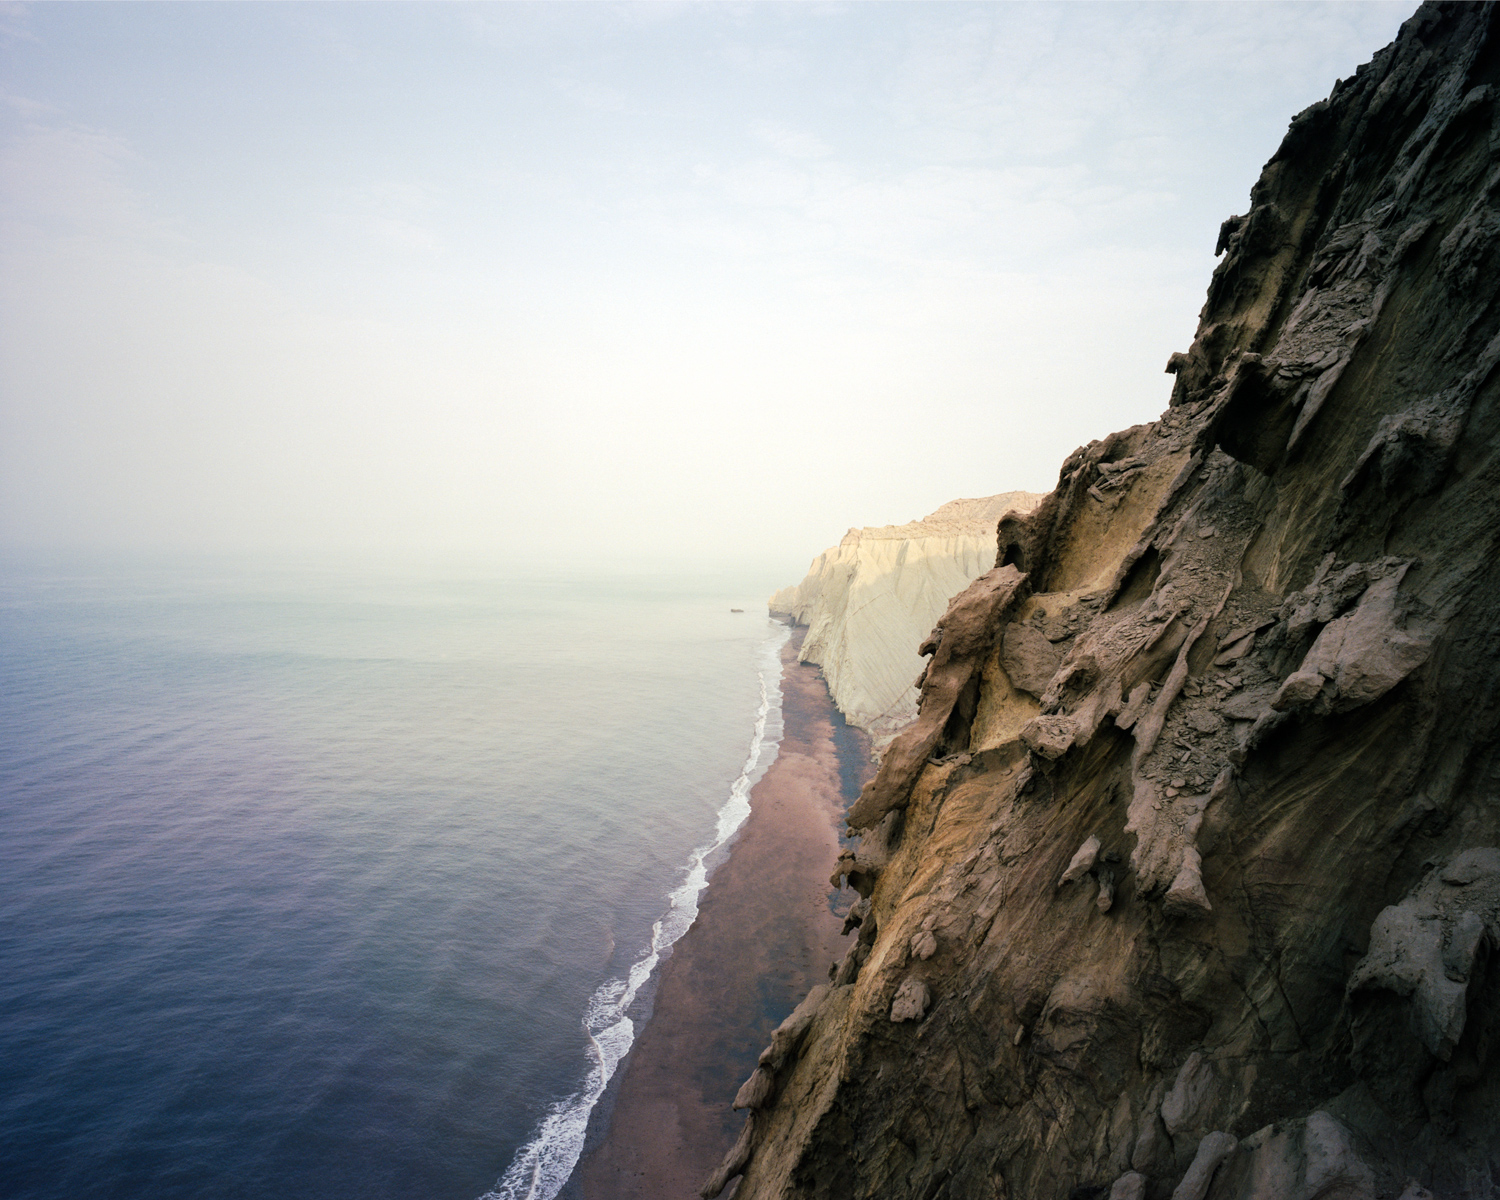 Caves & cliffs on the southern side of  Hormuz.